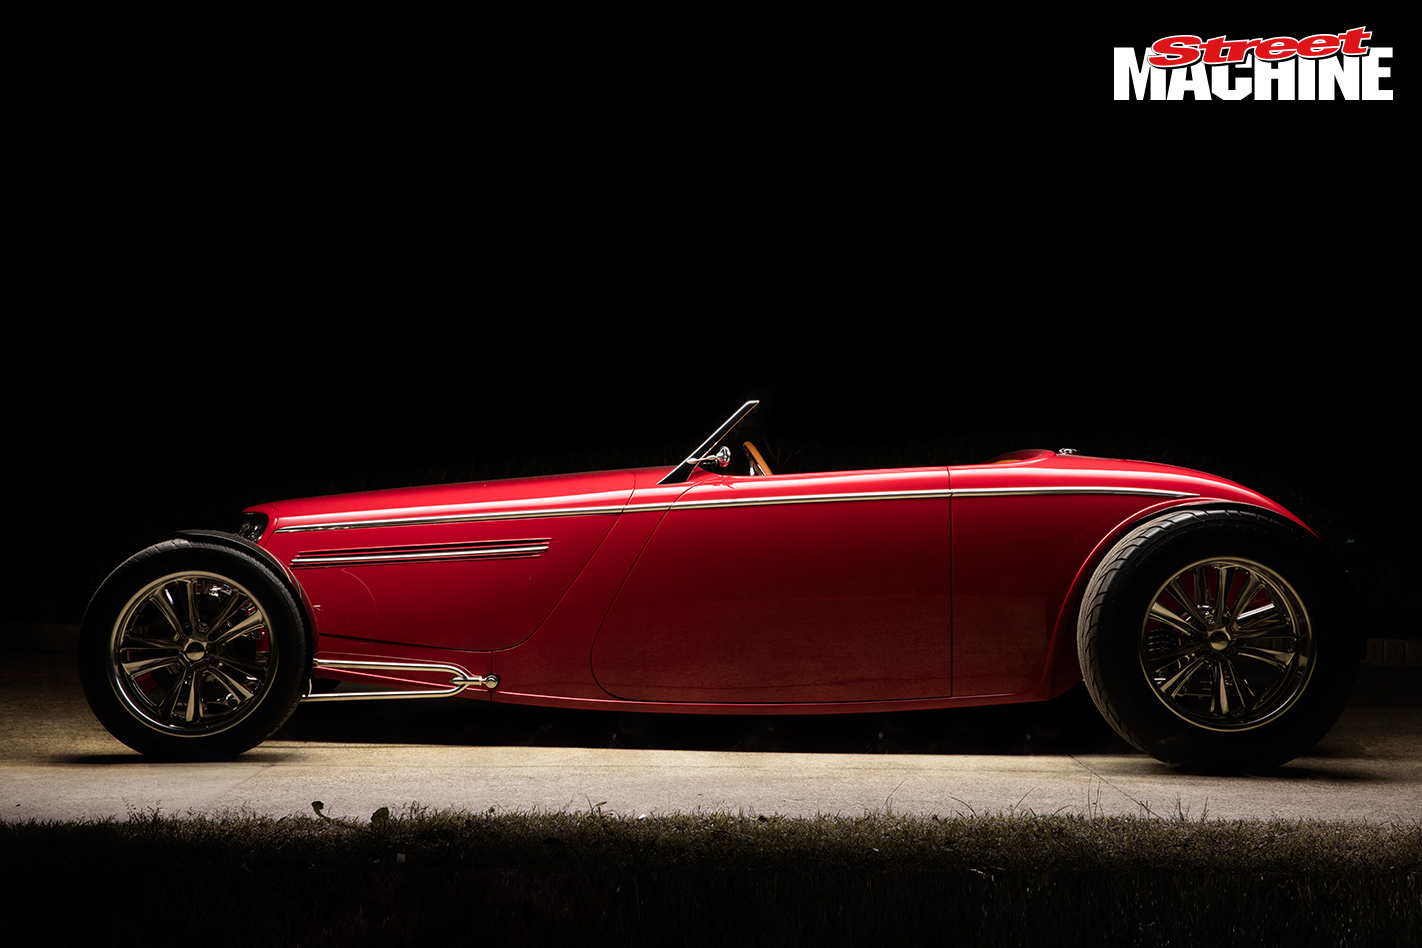 Hot Rod Roadster Nw